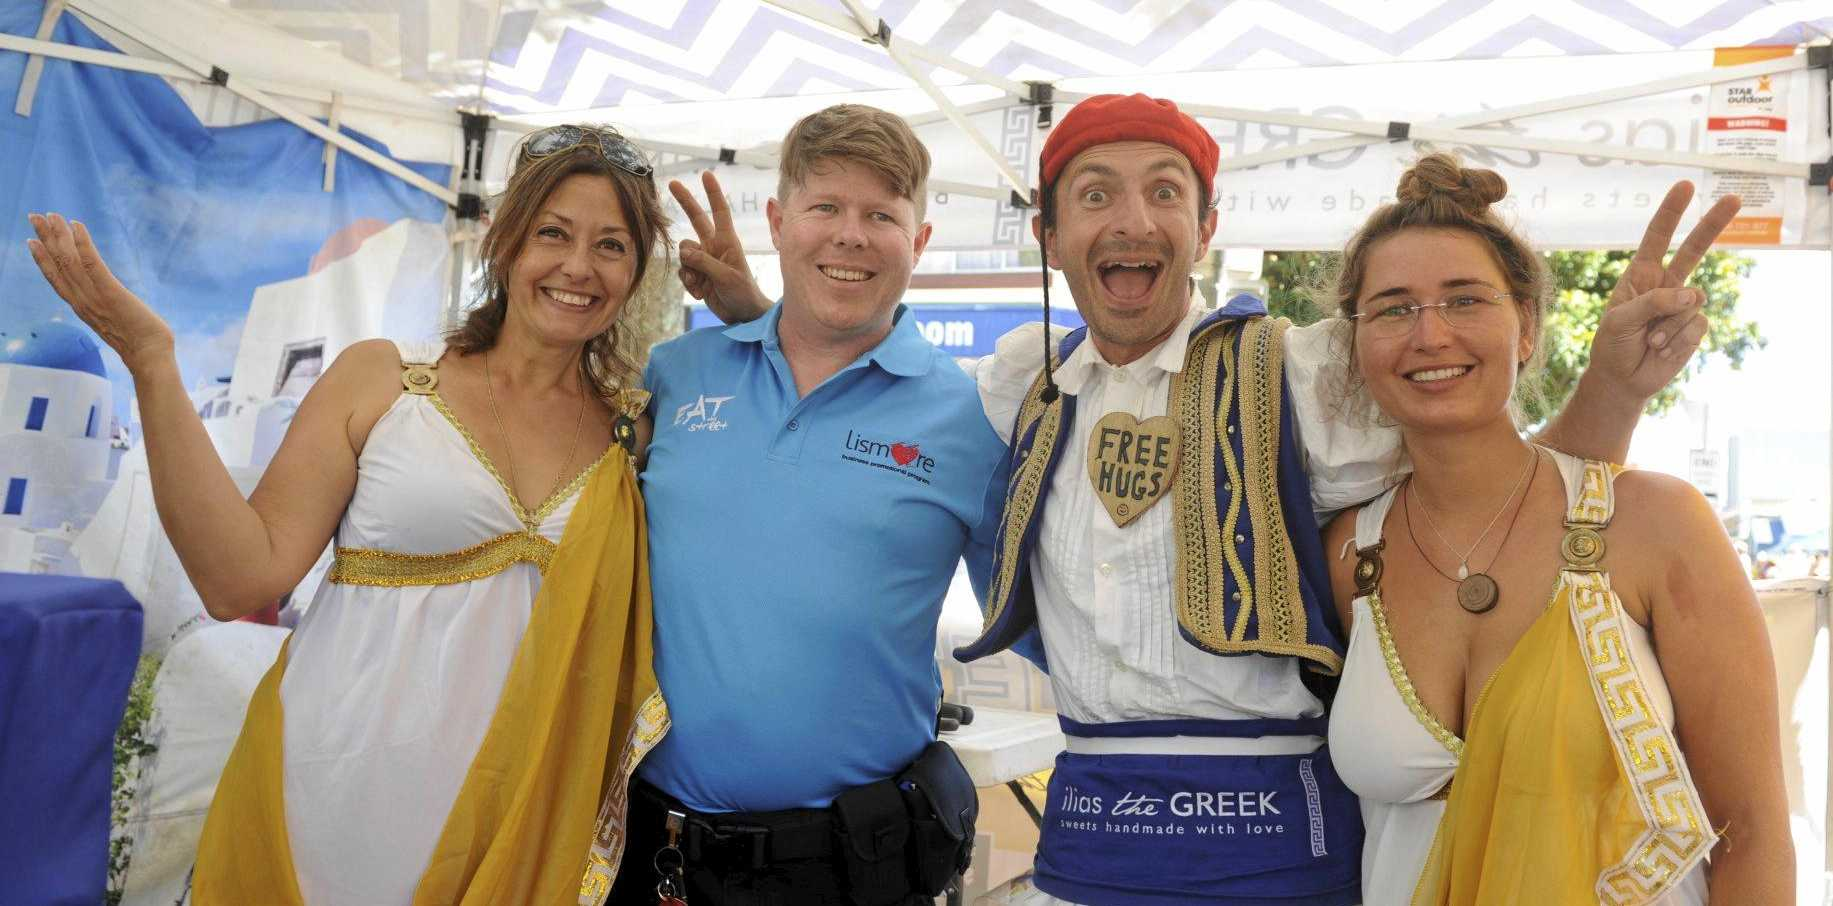 COOKING WITH THE GAS: Olga Pagratti,Cameron Smith, Ilias the Greek and Nicole Schnetzer at Eat the Street.